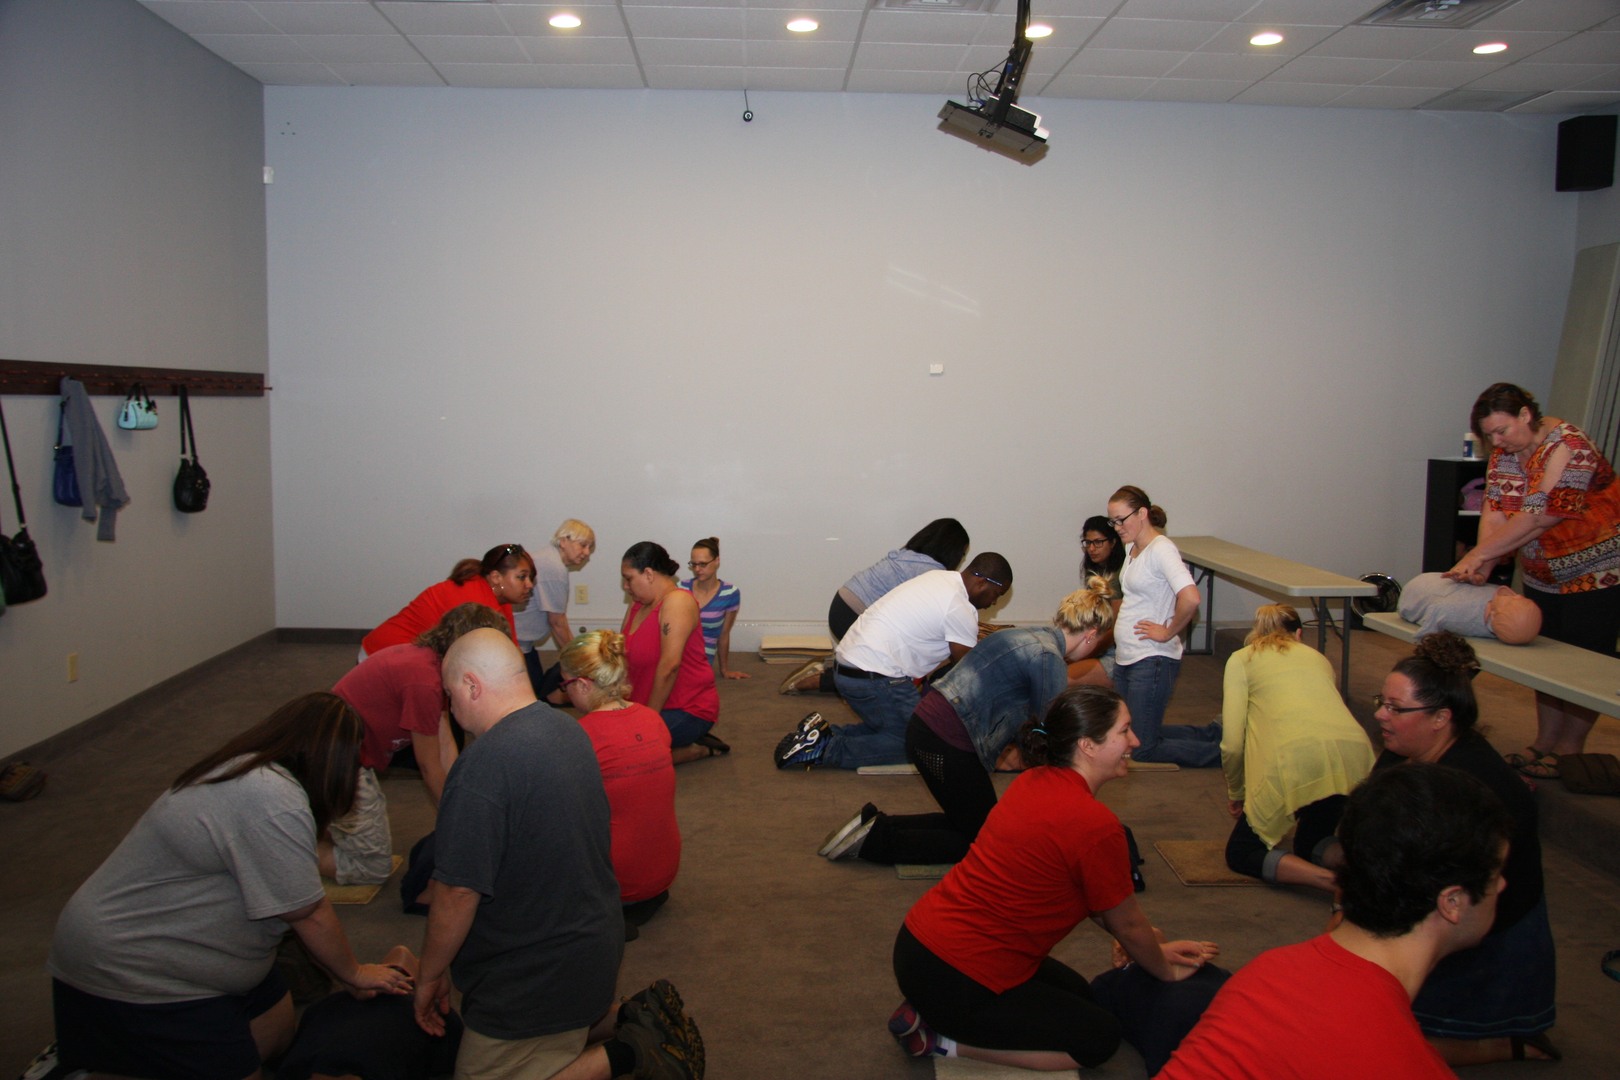 Cpr training first aid central ohio cpr columbus oh central ohio cpr classes are nationally recognized and accepted by american safety and health institute american heart association and ohio department 1betcityfo Choice Image